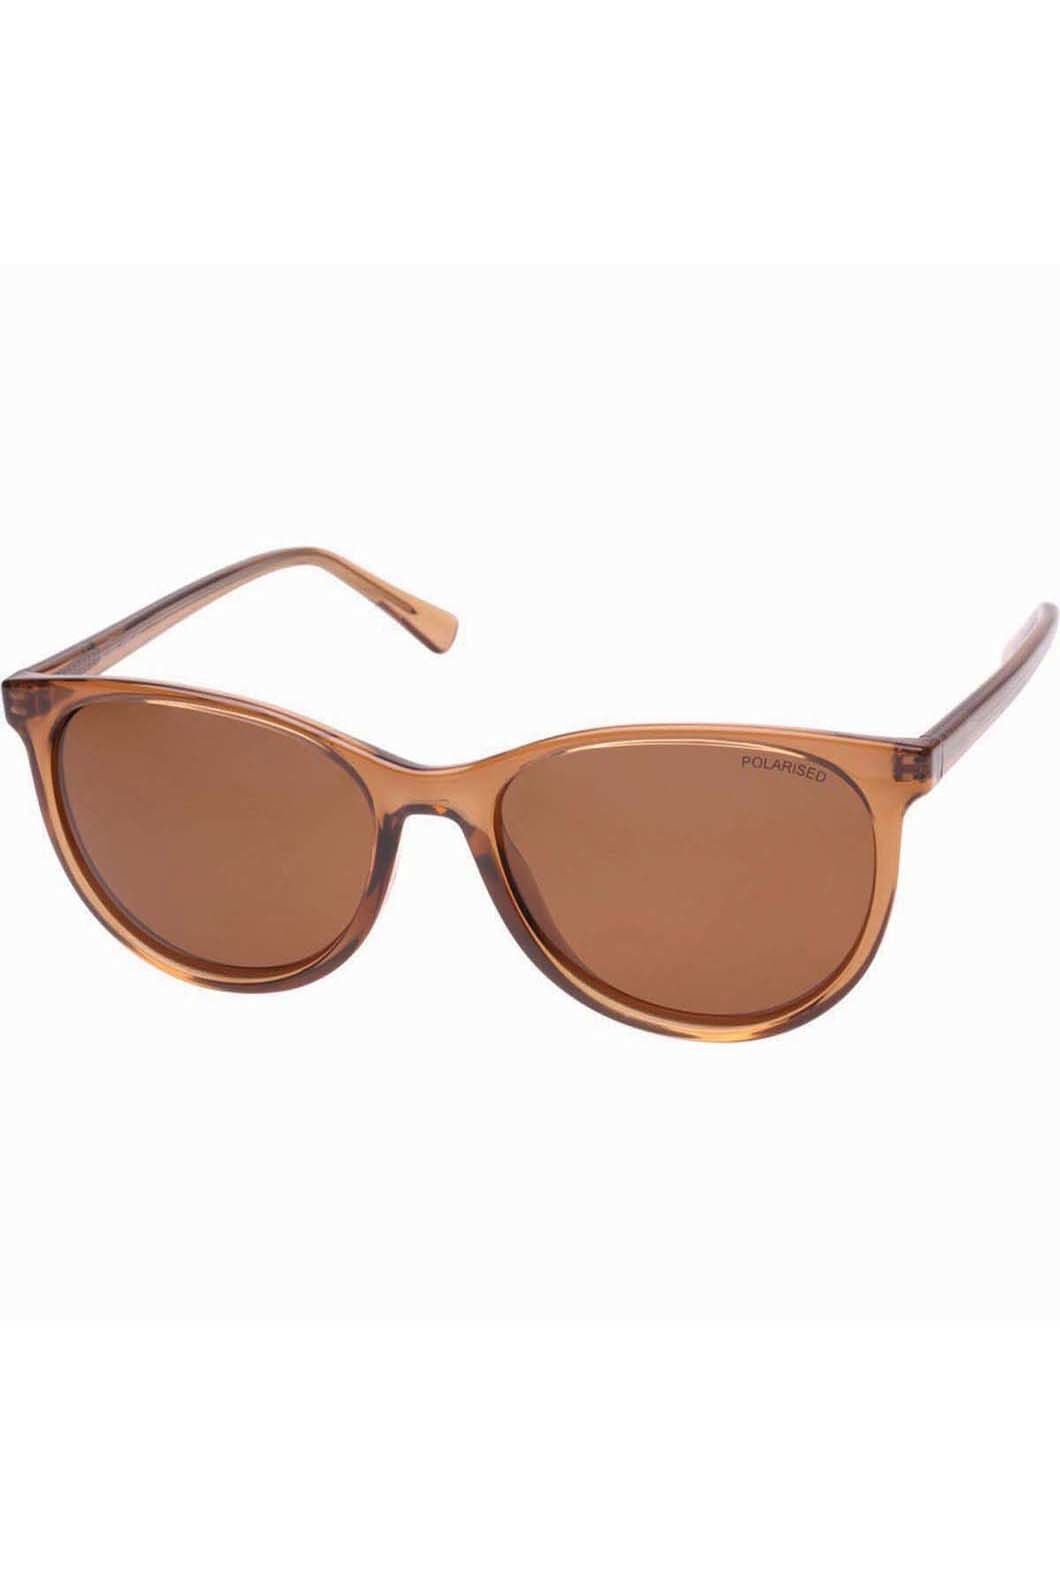 Cancer Council Women's Jilliby Sunglasses One Size Fits Most, CRYSTAL TAN, hi-res